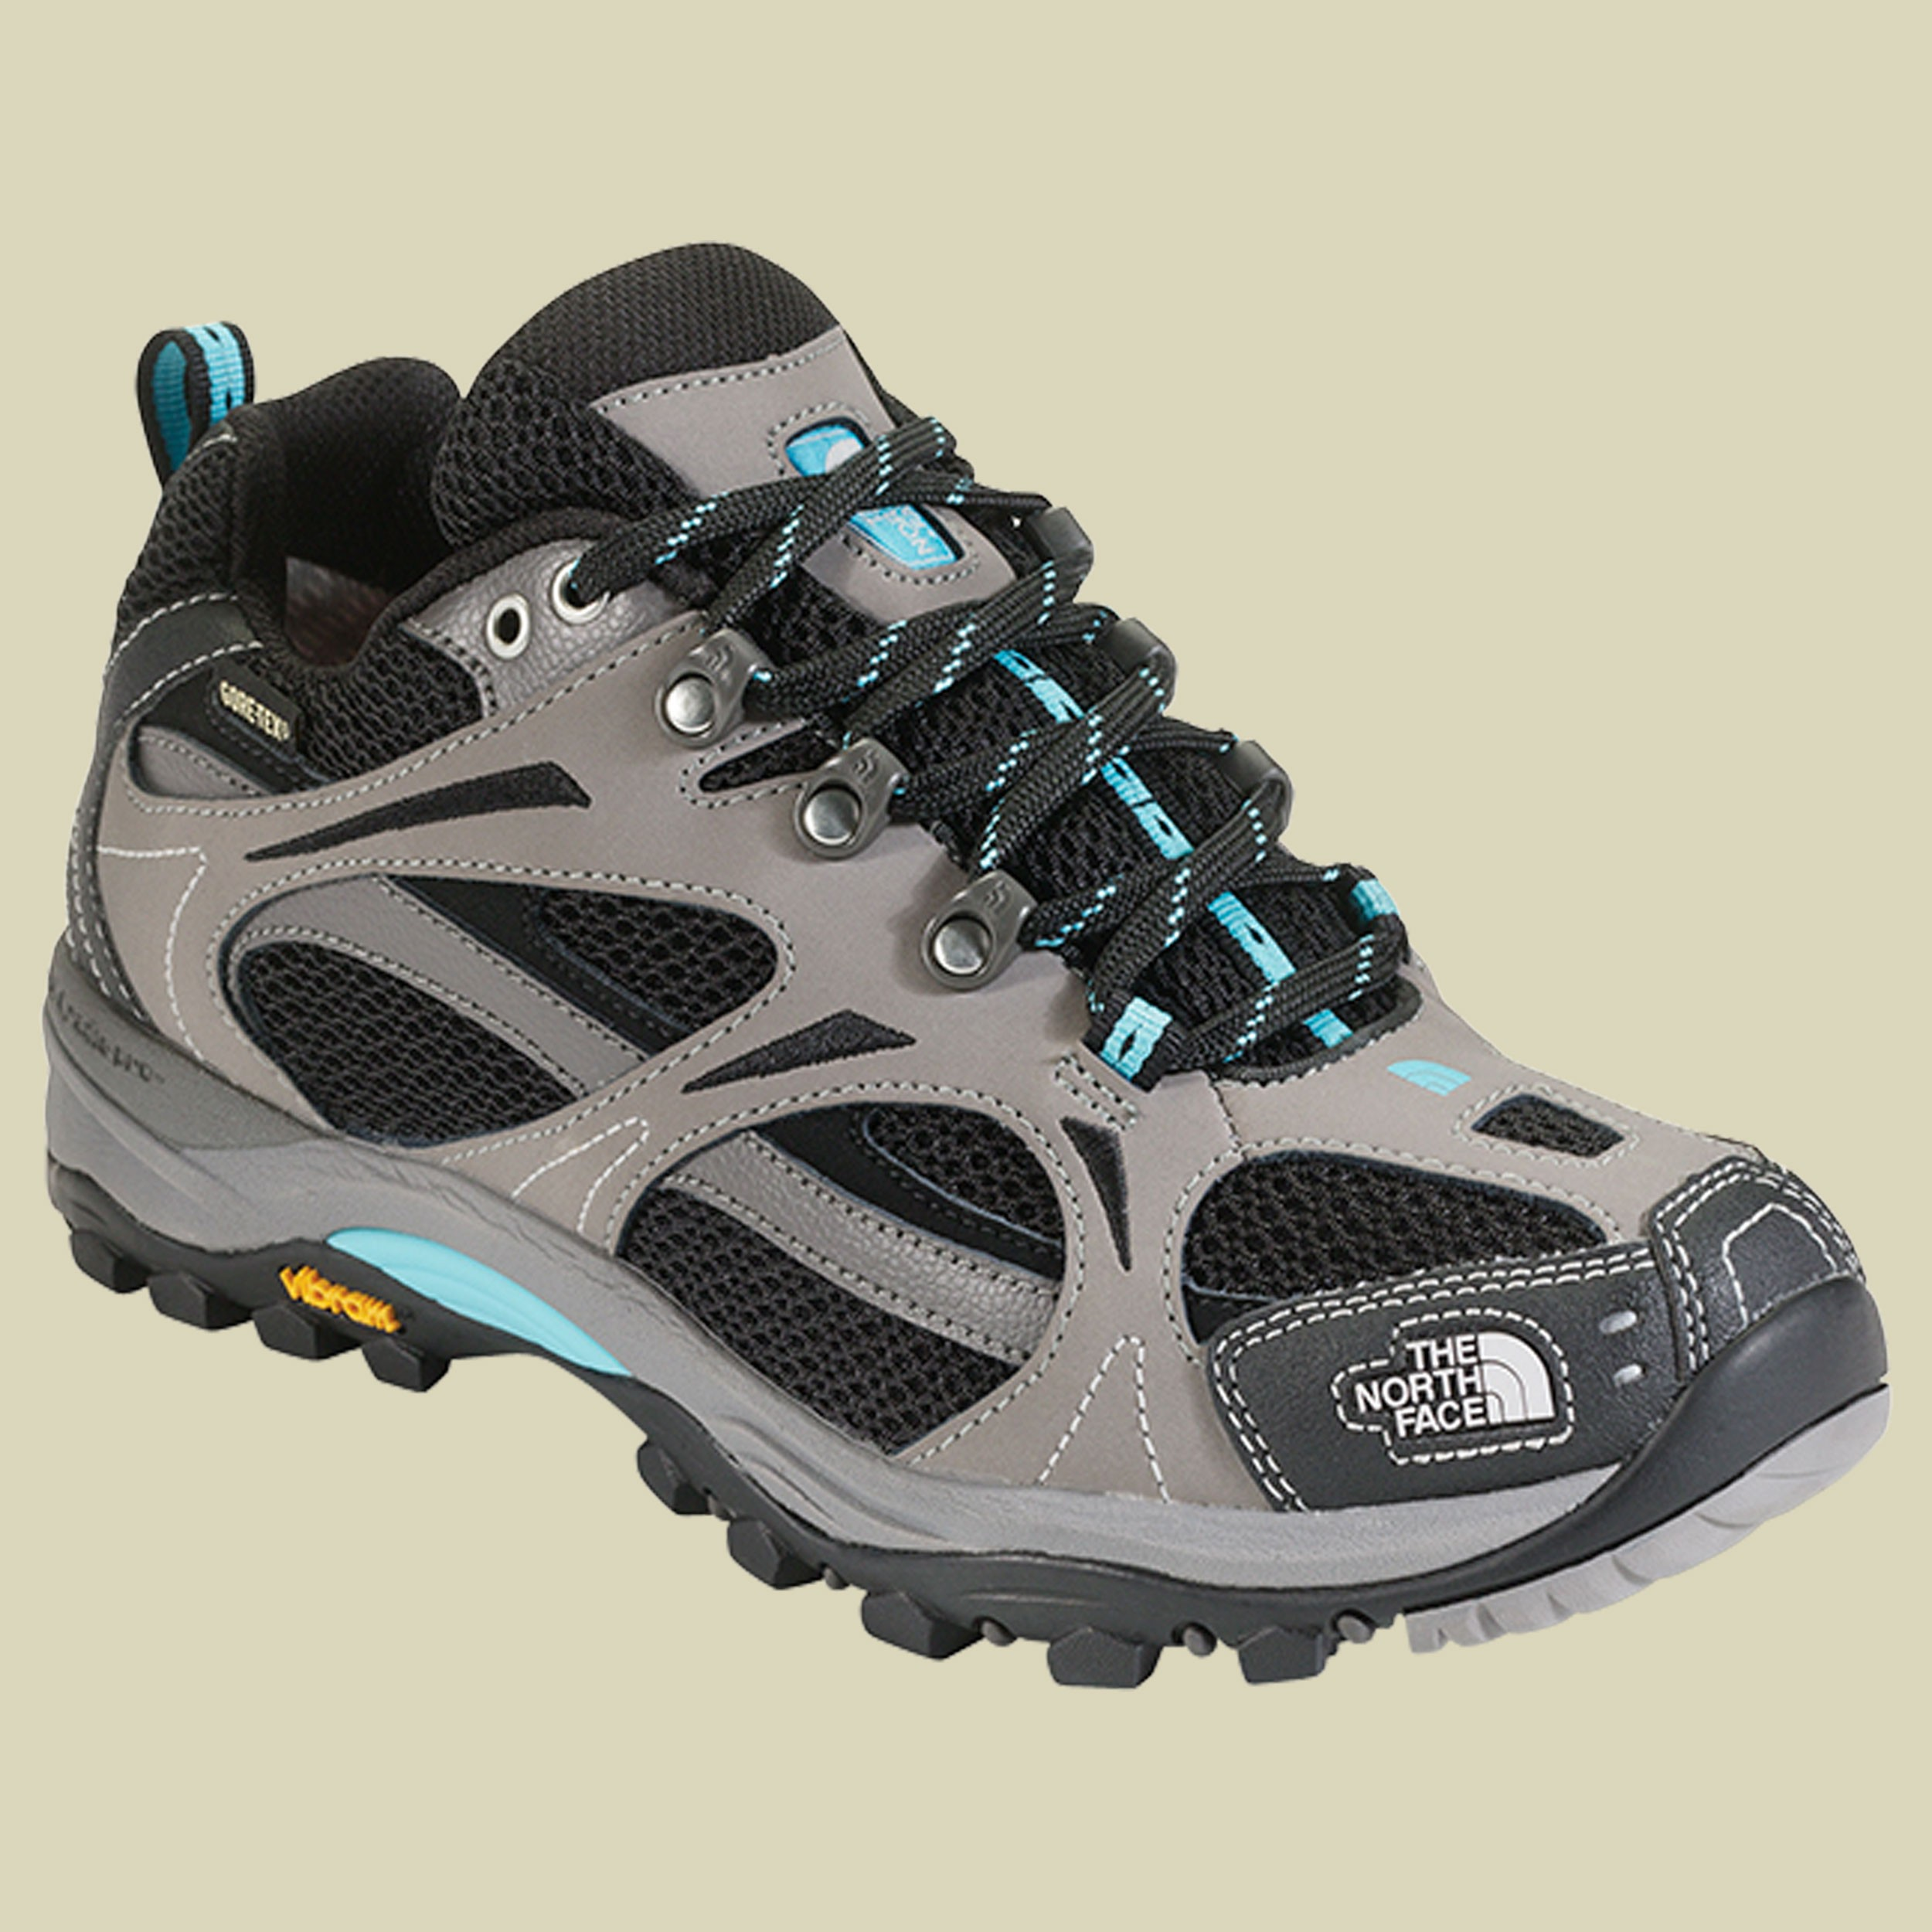 Hedgehog GTX XCR III Women